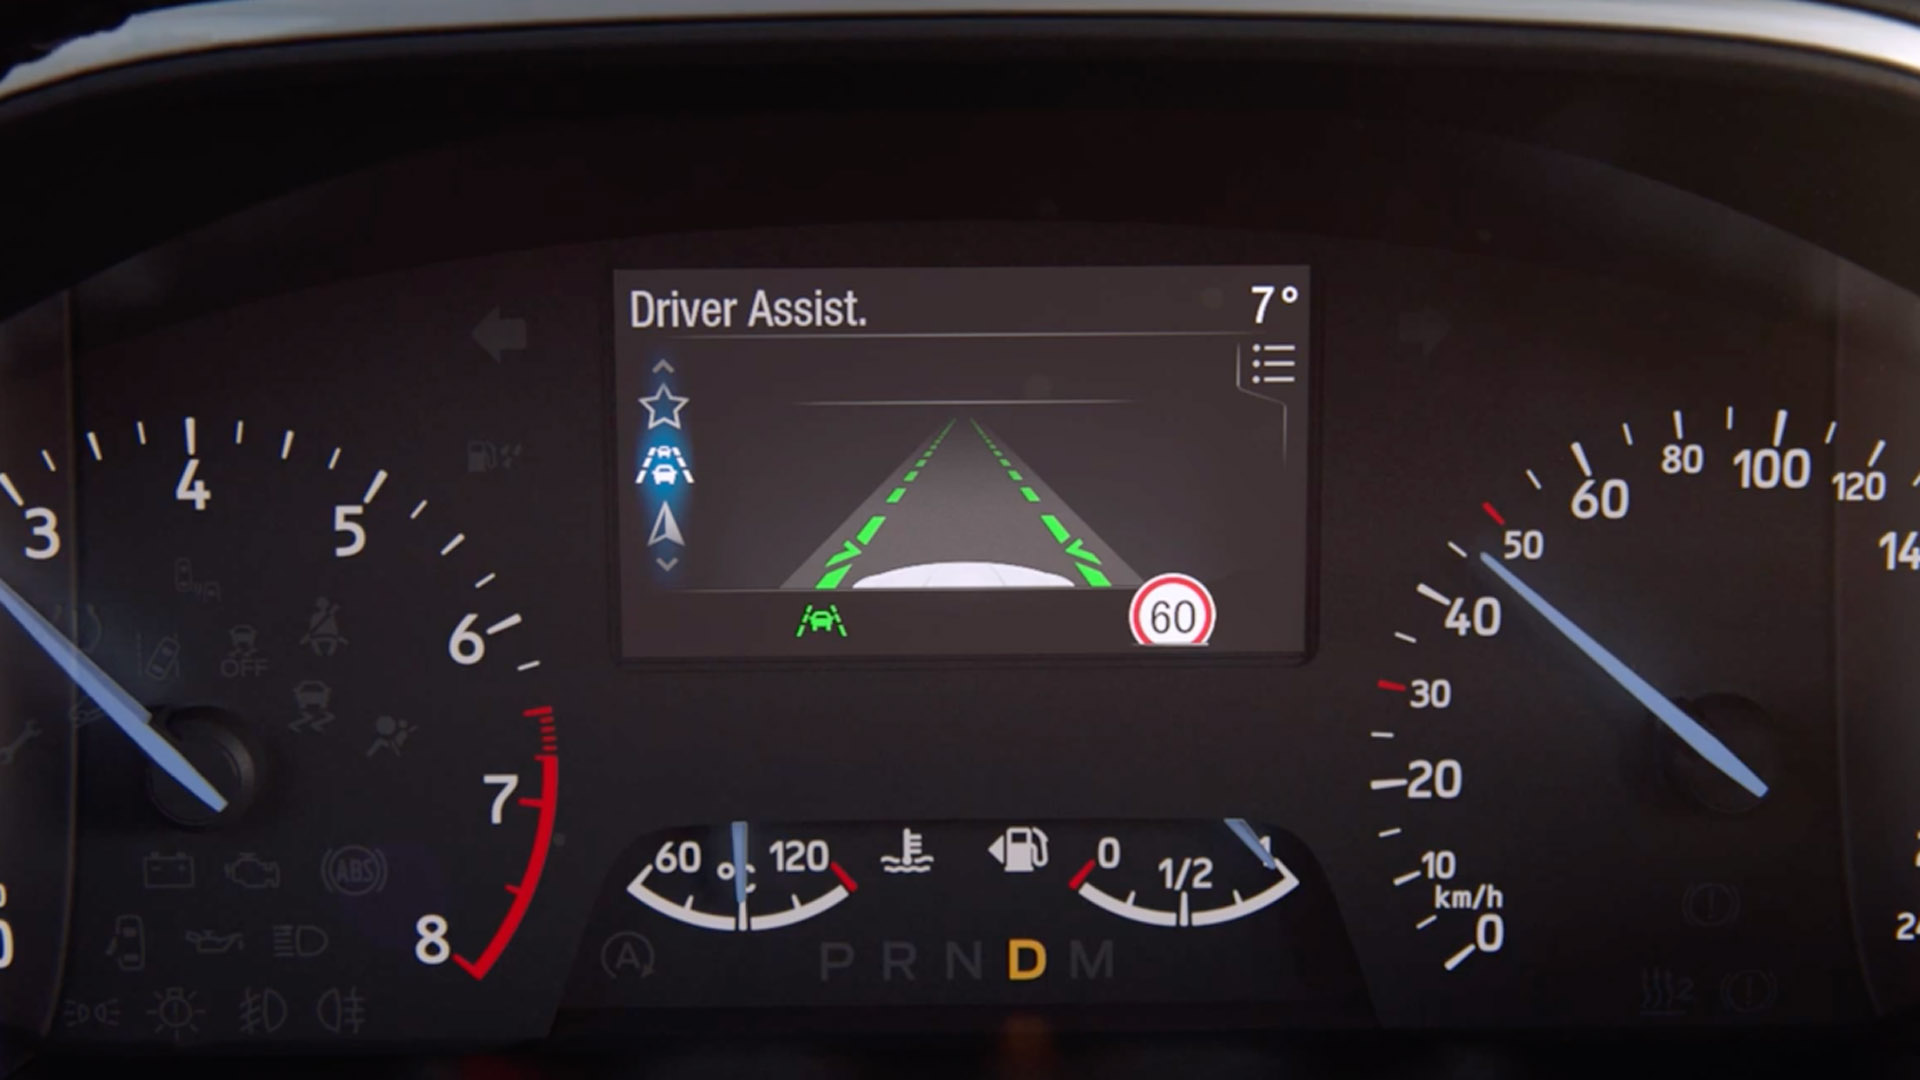 Ford Road Edge detection dashboard